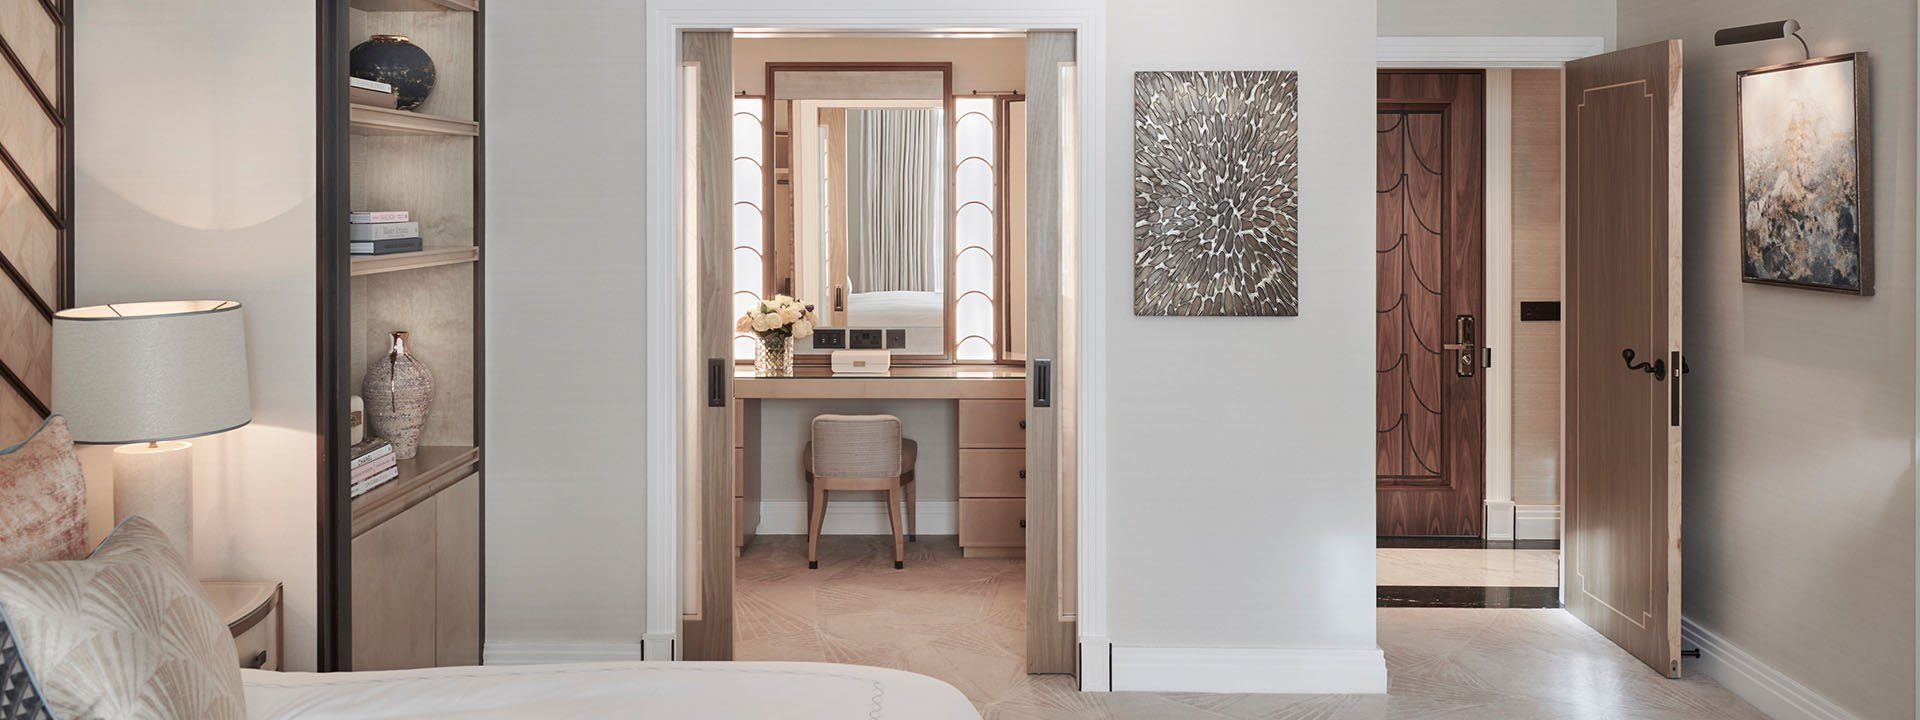 Claridge's Studio walk-in wardrobe